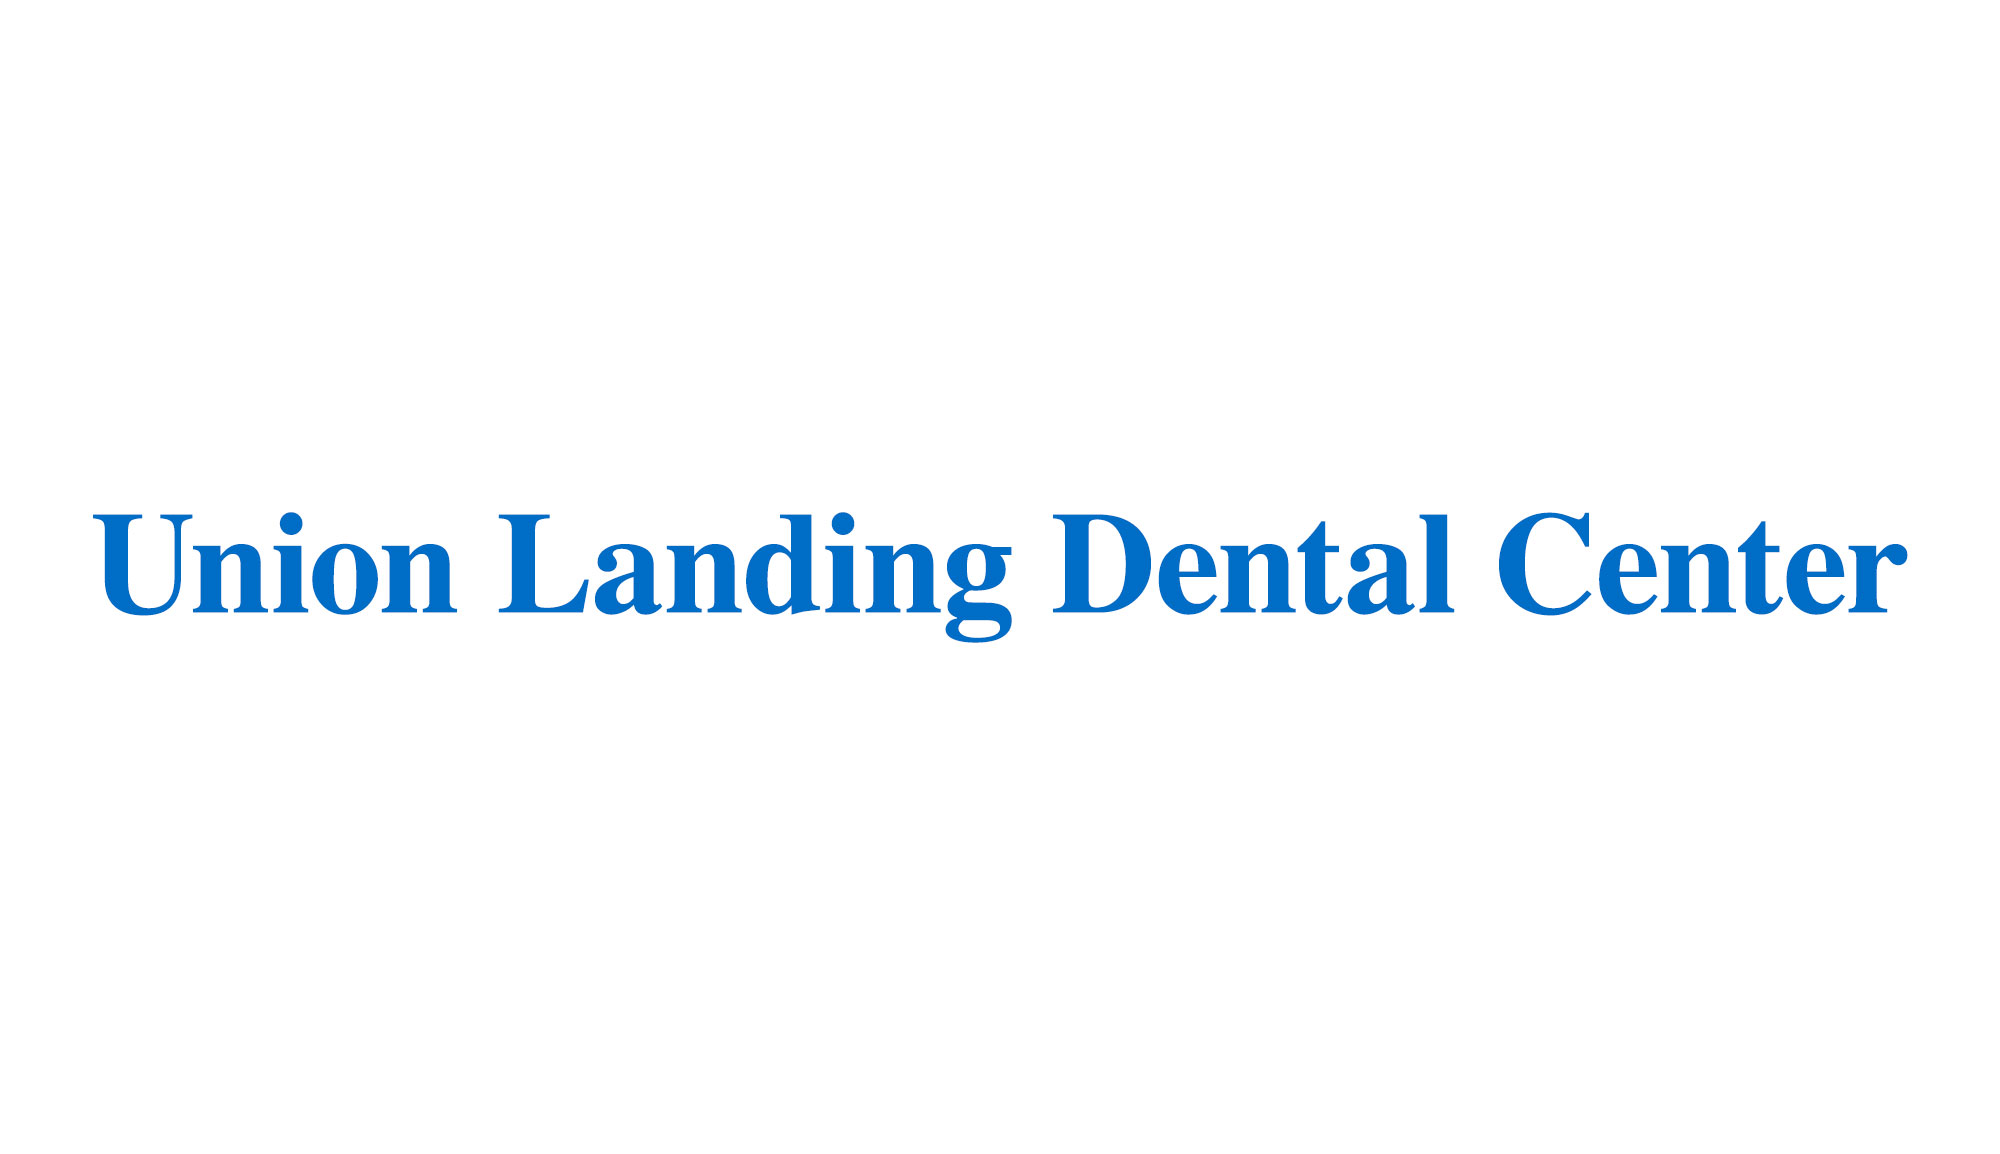 Union Landing Dental Center logo